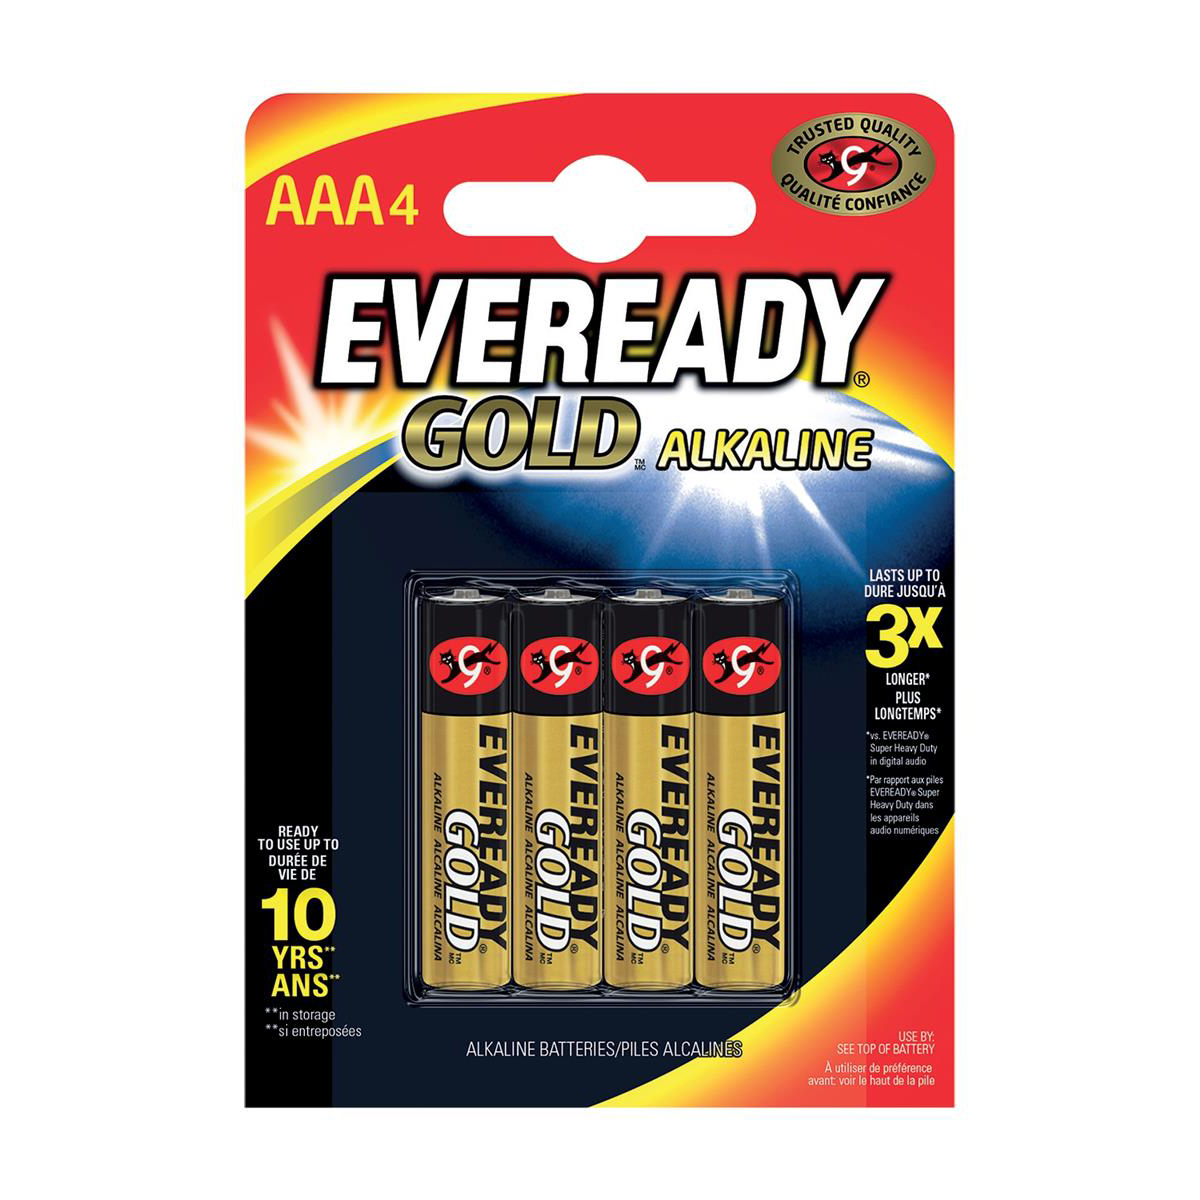 Eveready Gold Alkaline Batteries AAA/LR03 Ref 636034 Pack 4